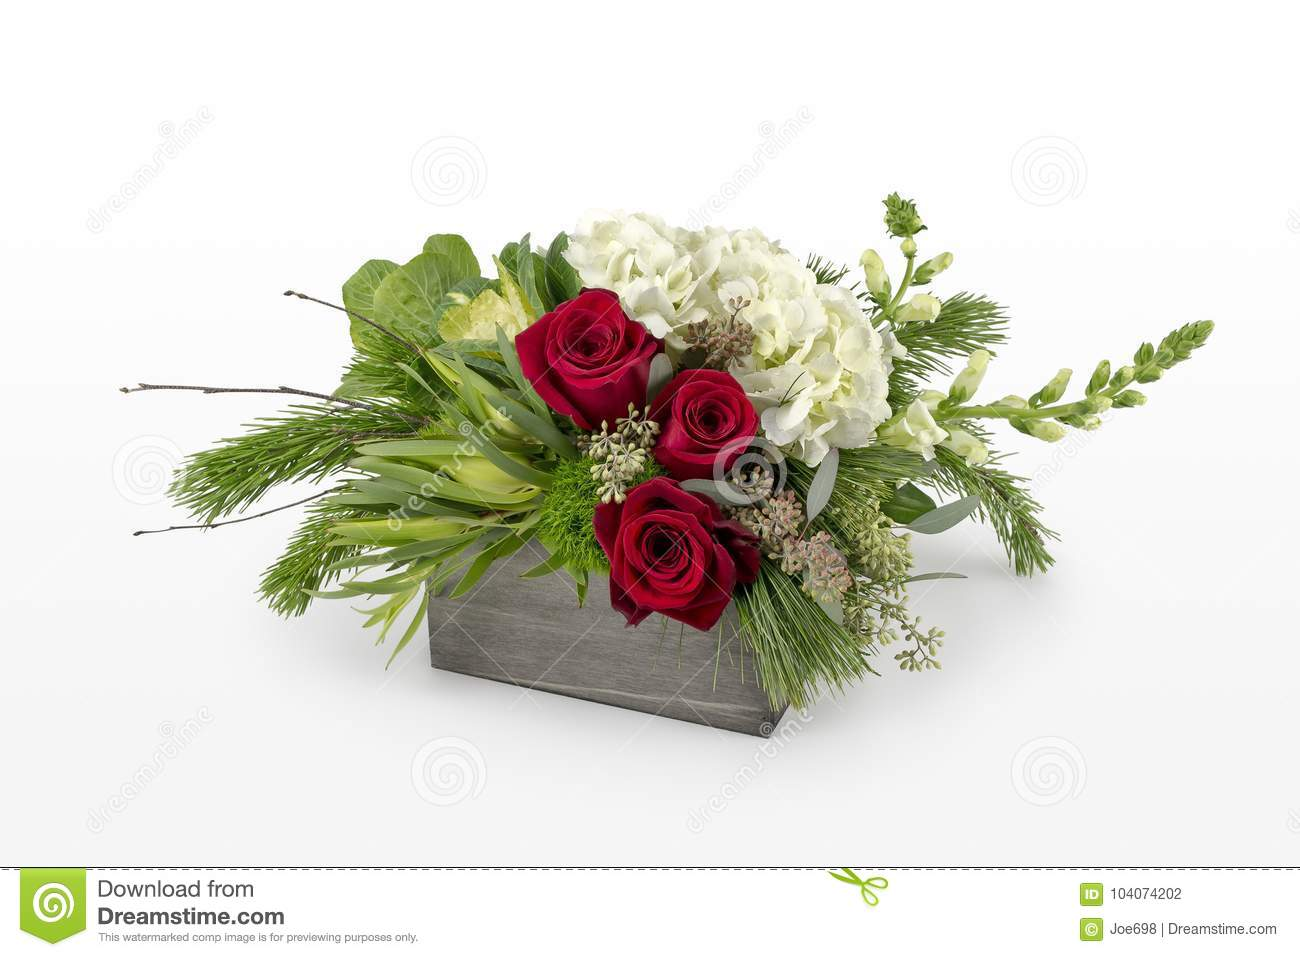 Christmas Flower Arrangement With Red Roses And Mixed Holiday Greens